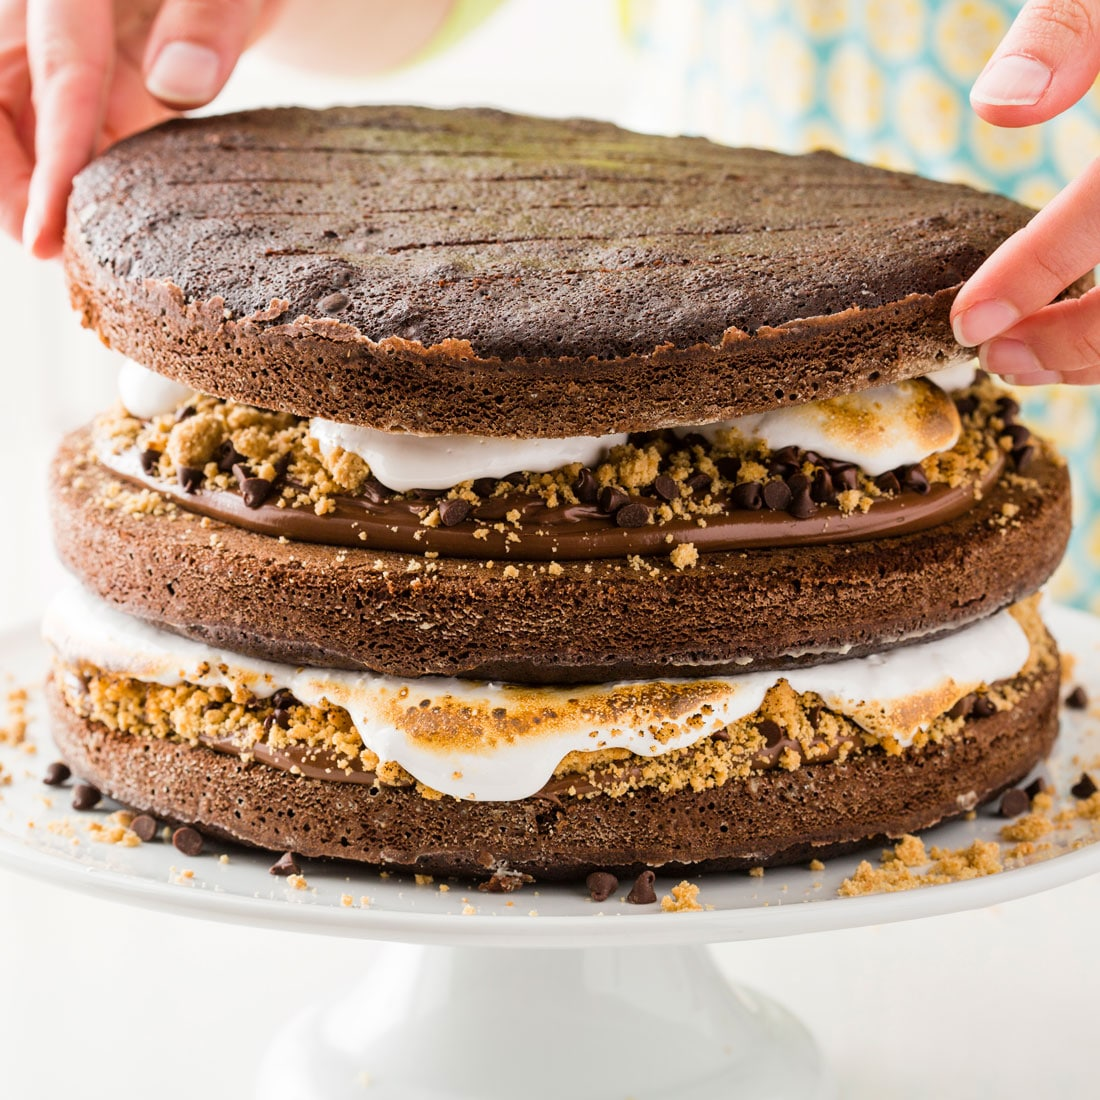 The side of Miss Jones Baking Co's Salted Nutella S'more Cake with the layers